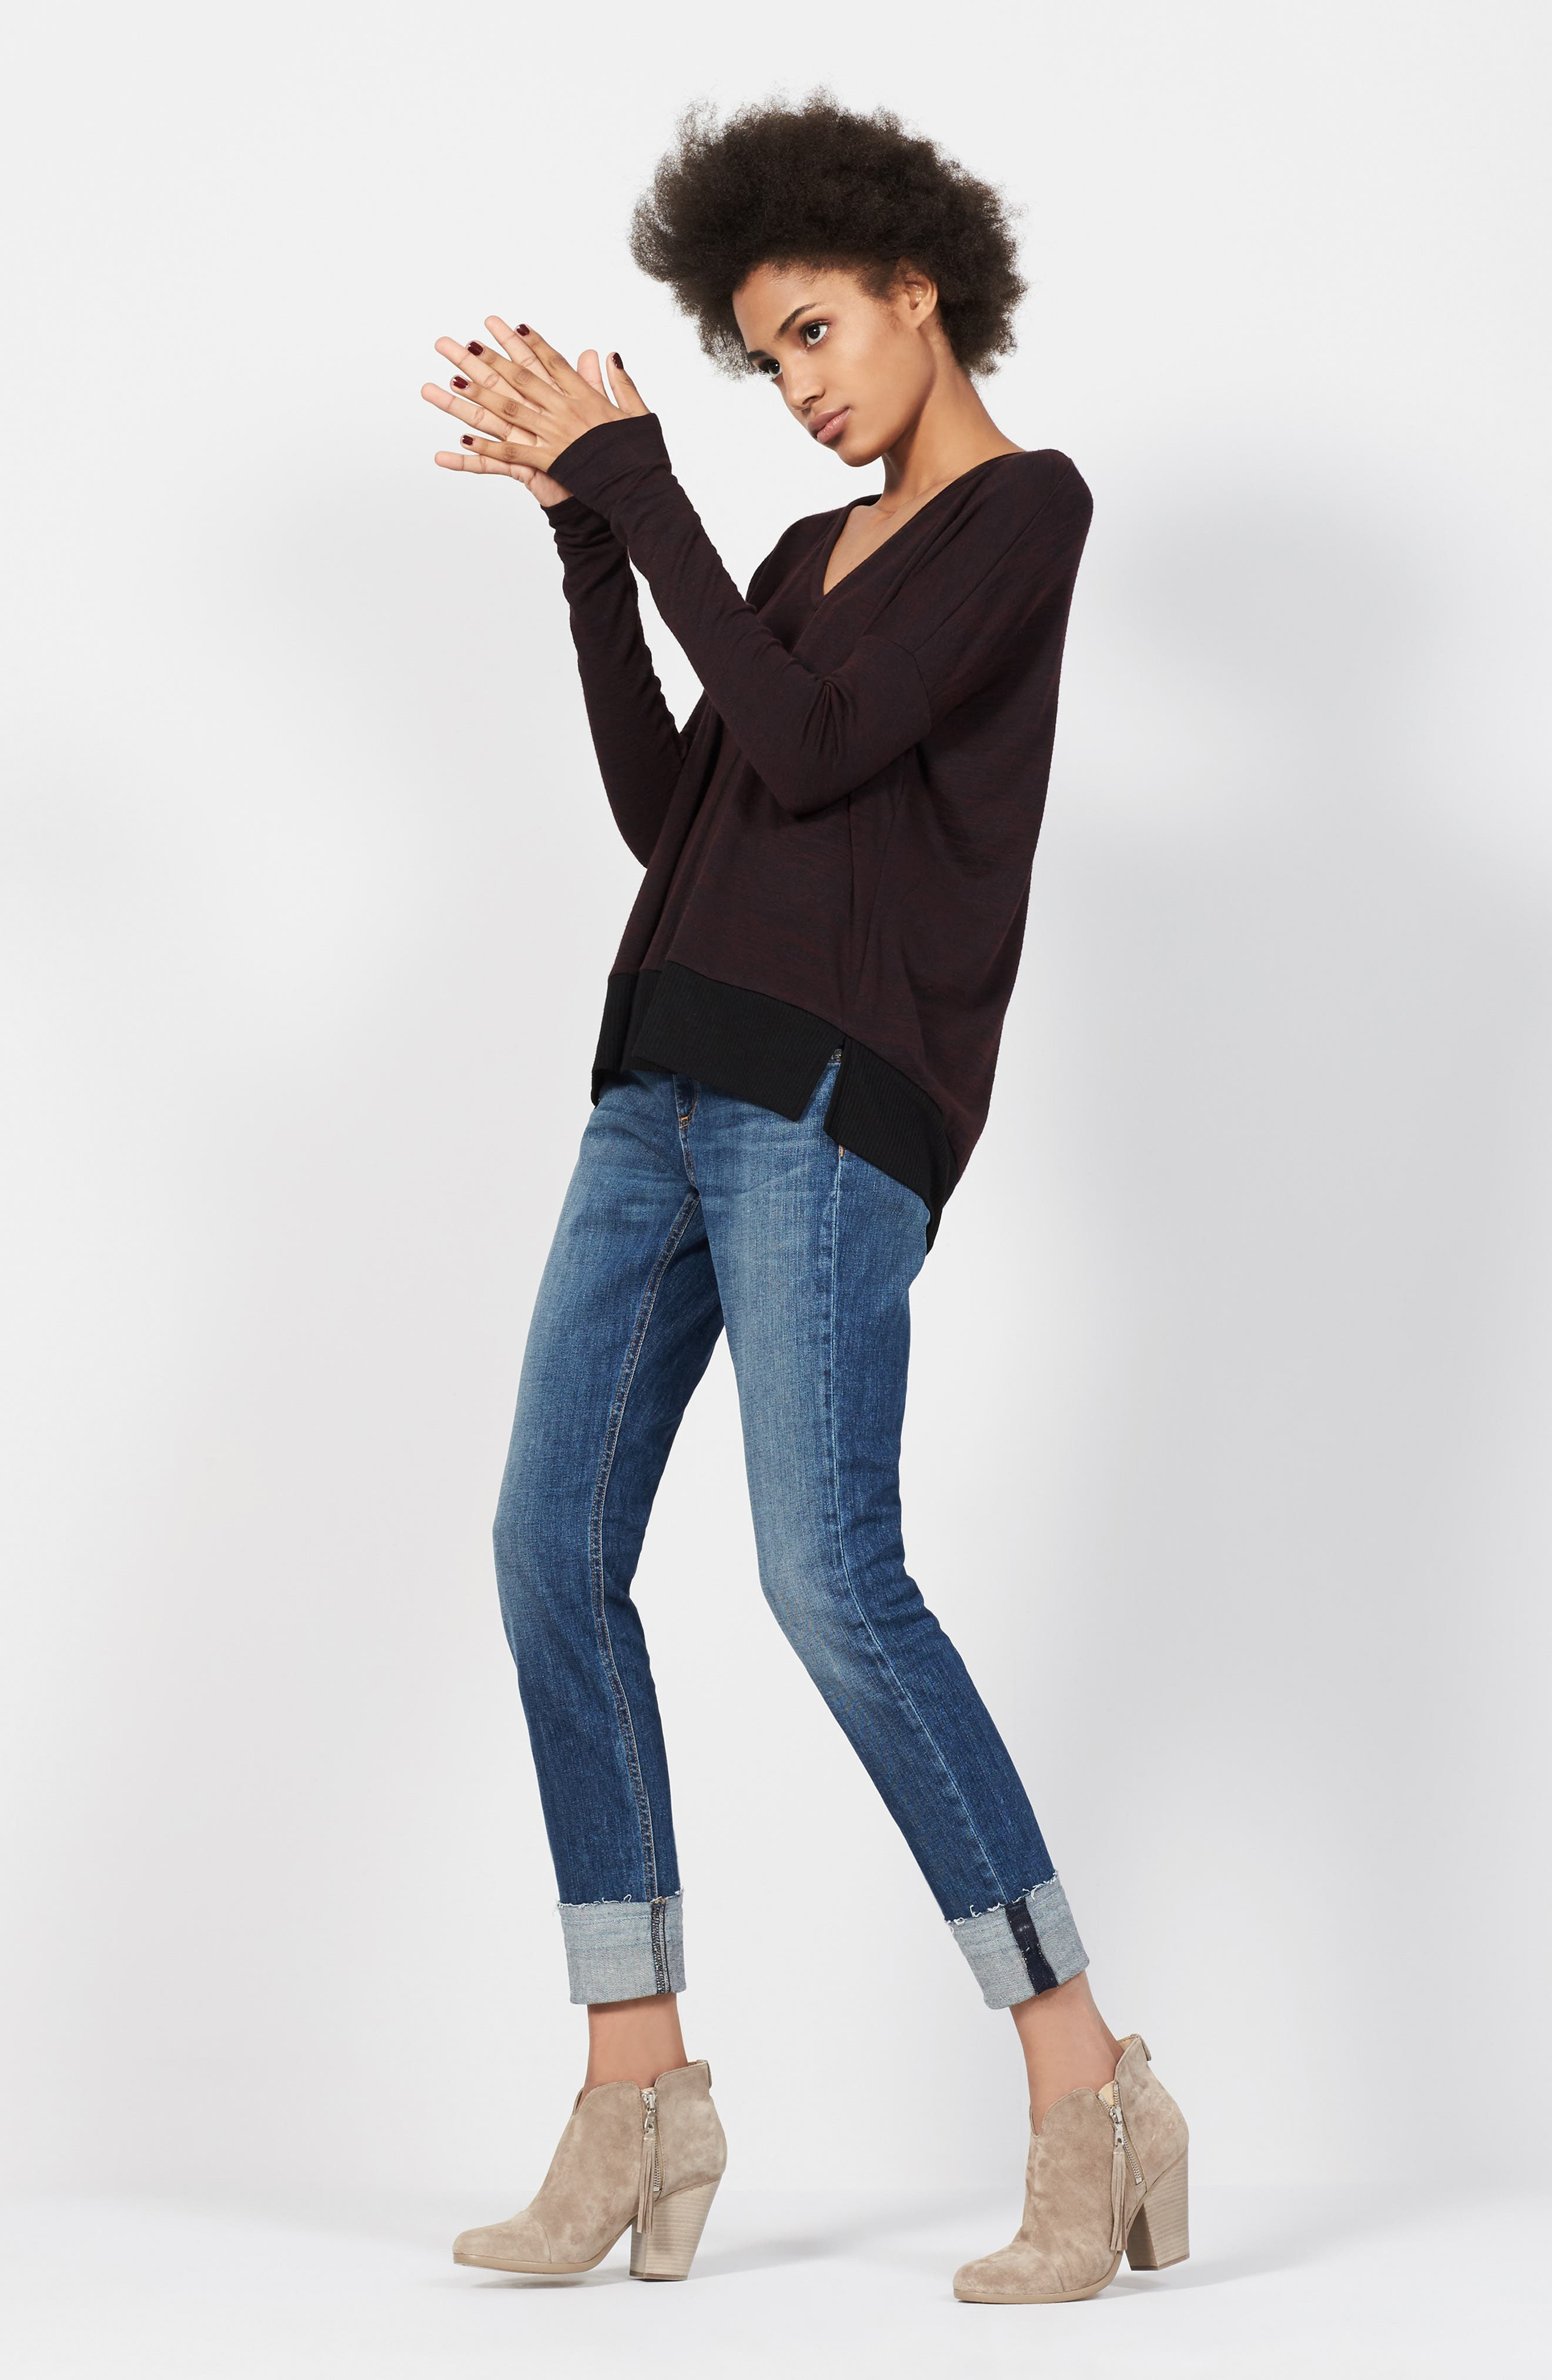 rag & bone/JEAN Tee & Jeans Outfit with Accessories